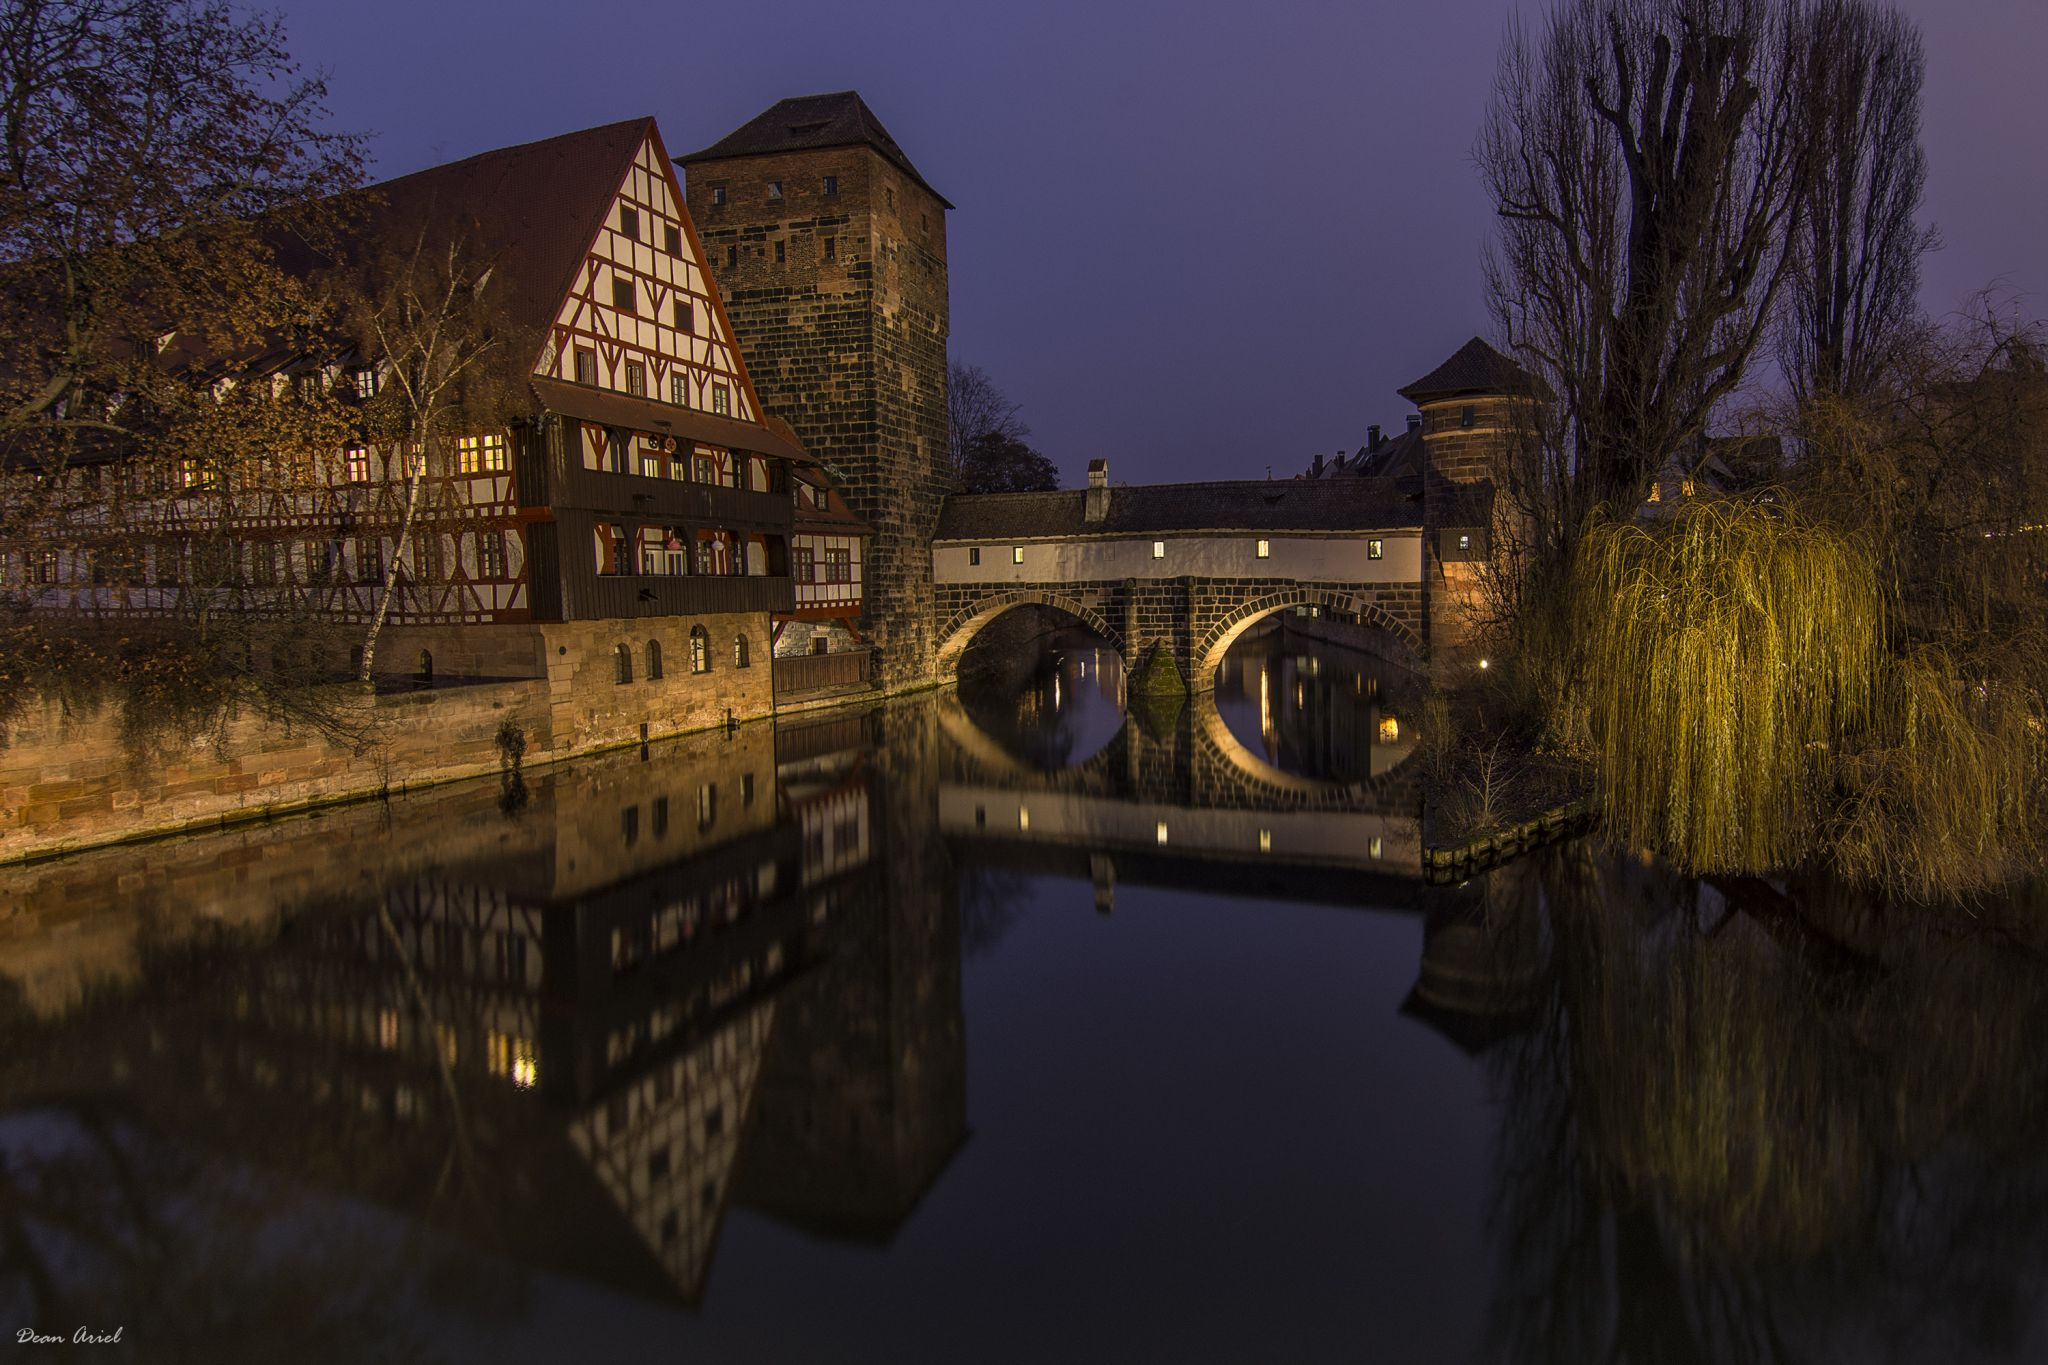 Nuremberg old town, Germany